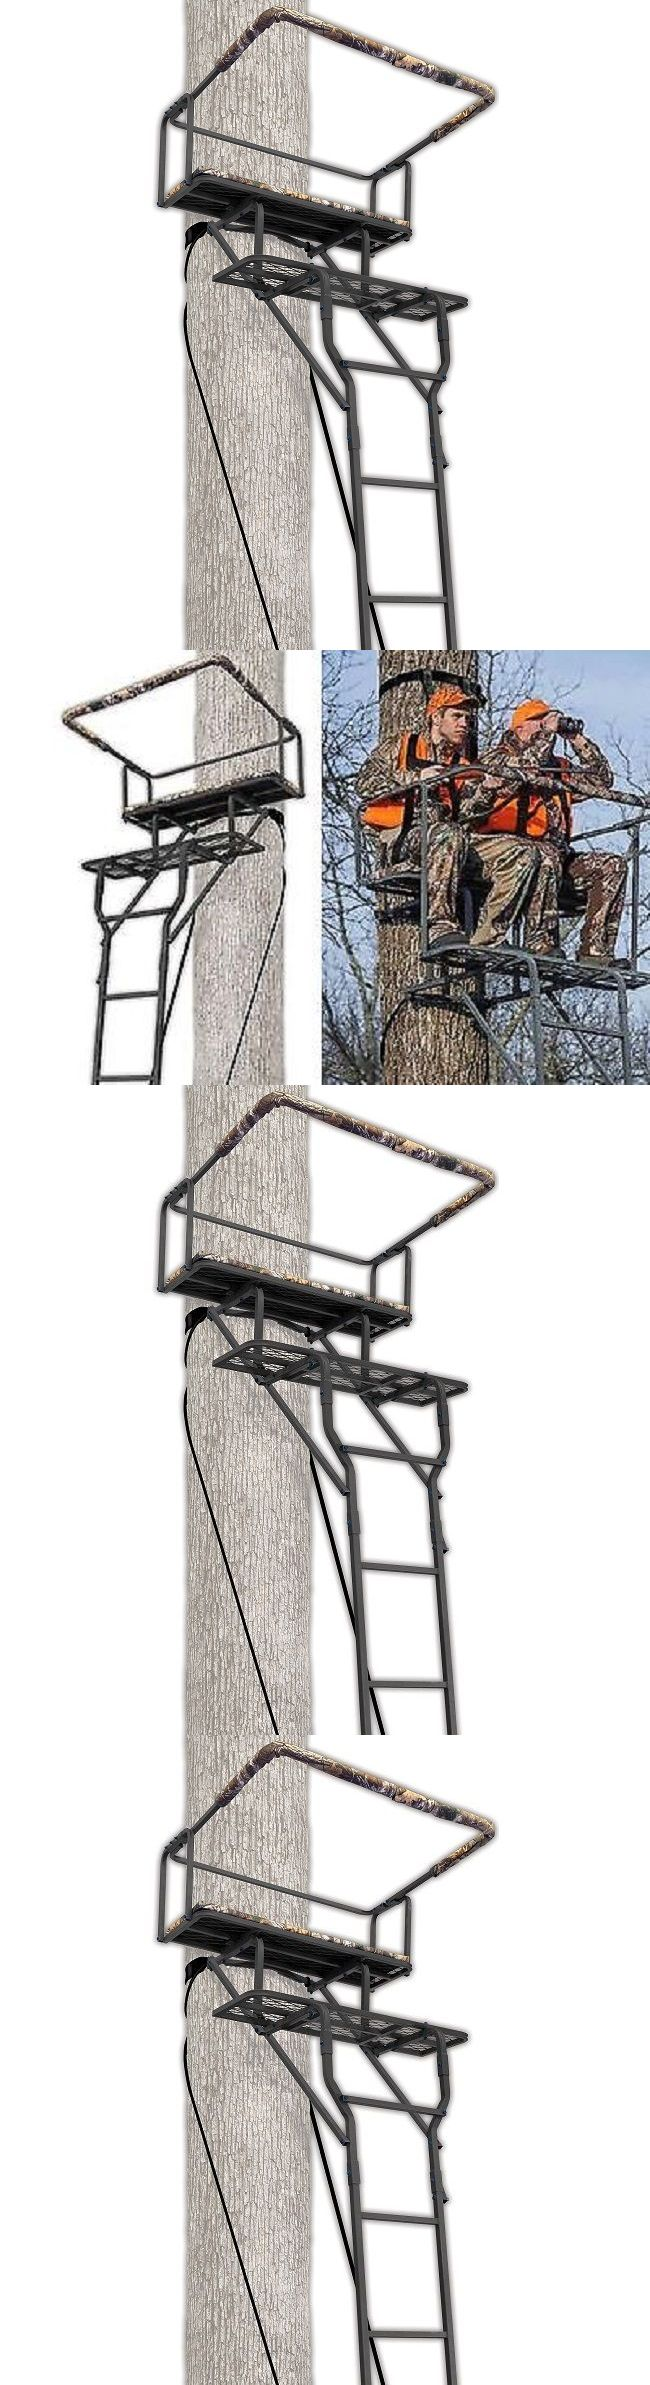 Tree Stands 52508: 2 Man Hunting Ladder Stand Deer Standing Bow Portable Lightweight Treestand 15 -> BUY IT NOW ONLY: $109.95 on eBay!